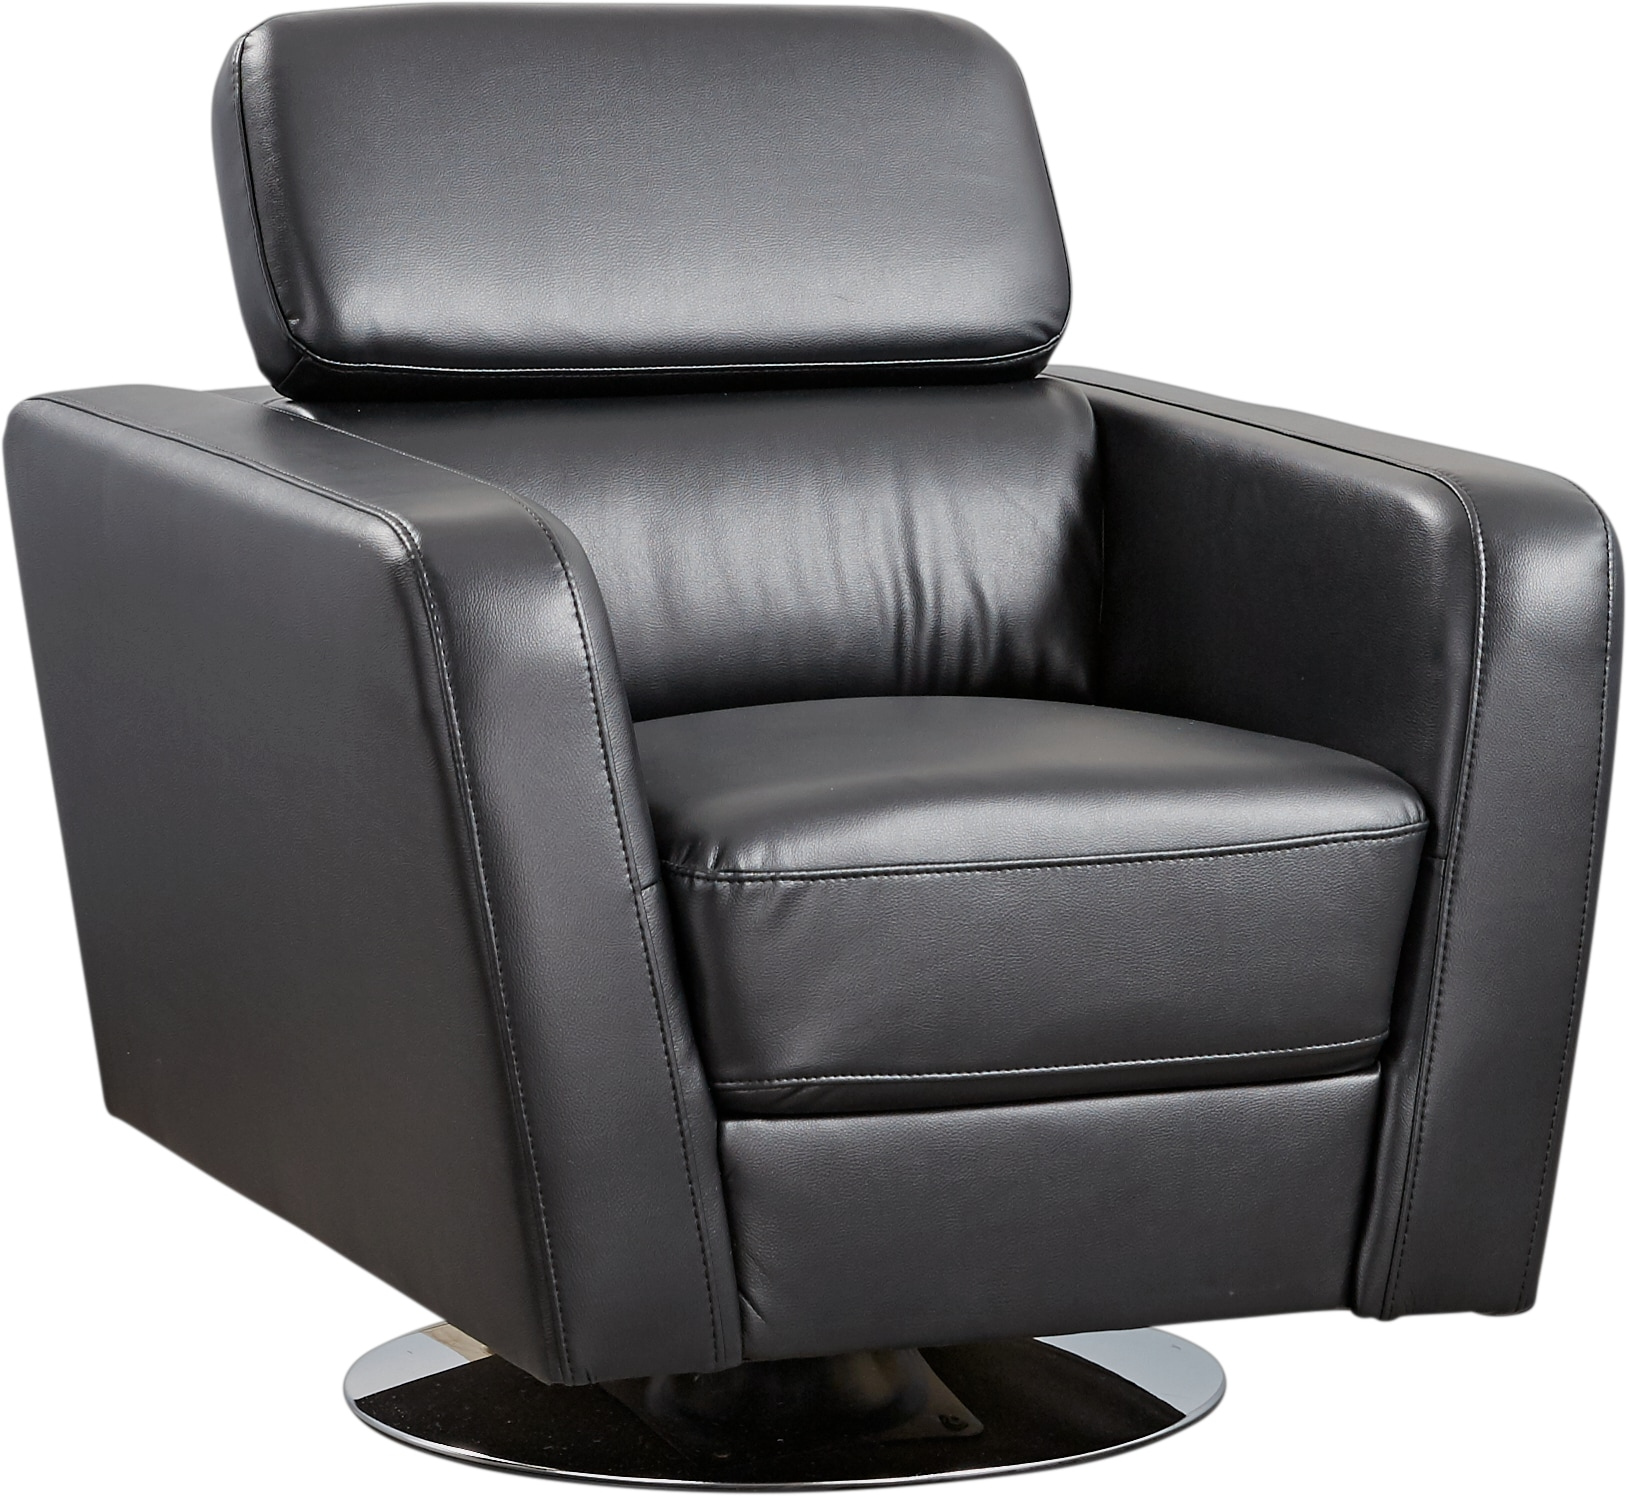 Dellinger Black Swivel Chair – Accent Chairs (Black) Throughout Leather Black Swivel Chairs (View 13 of 25)